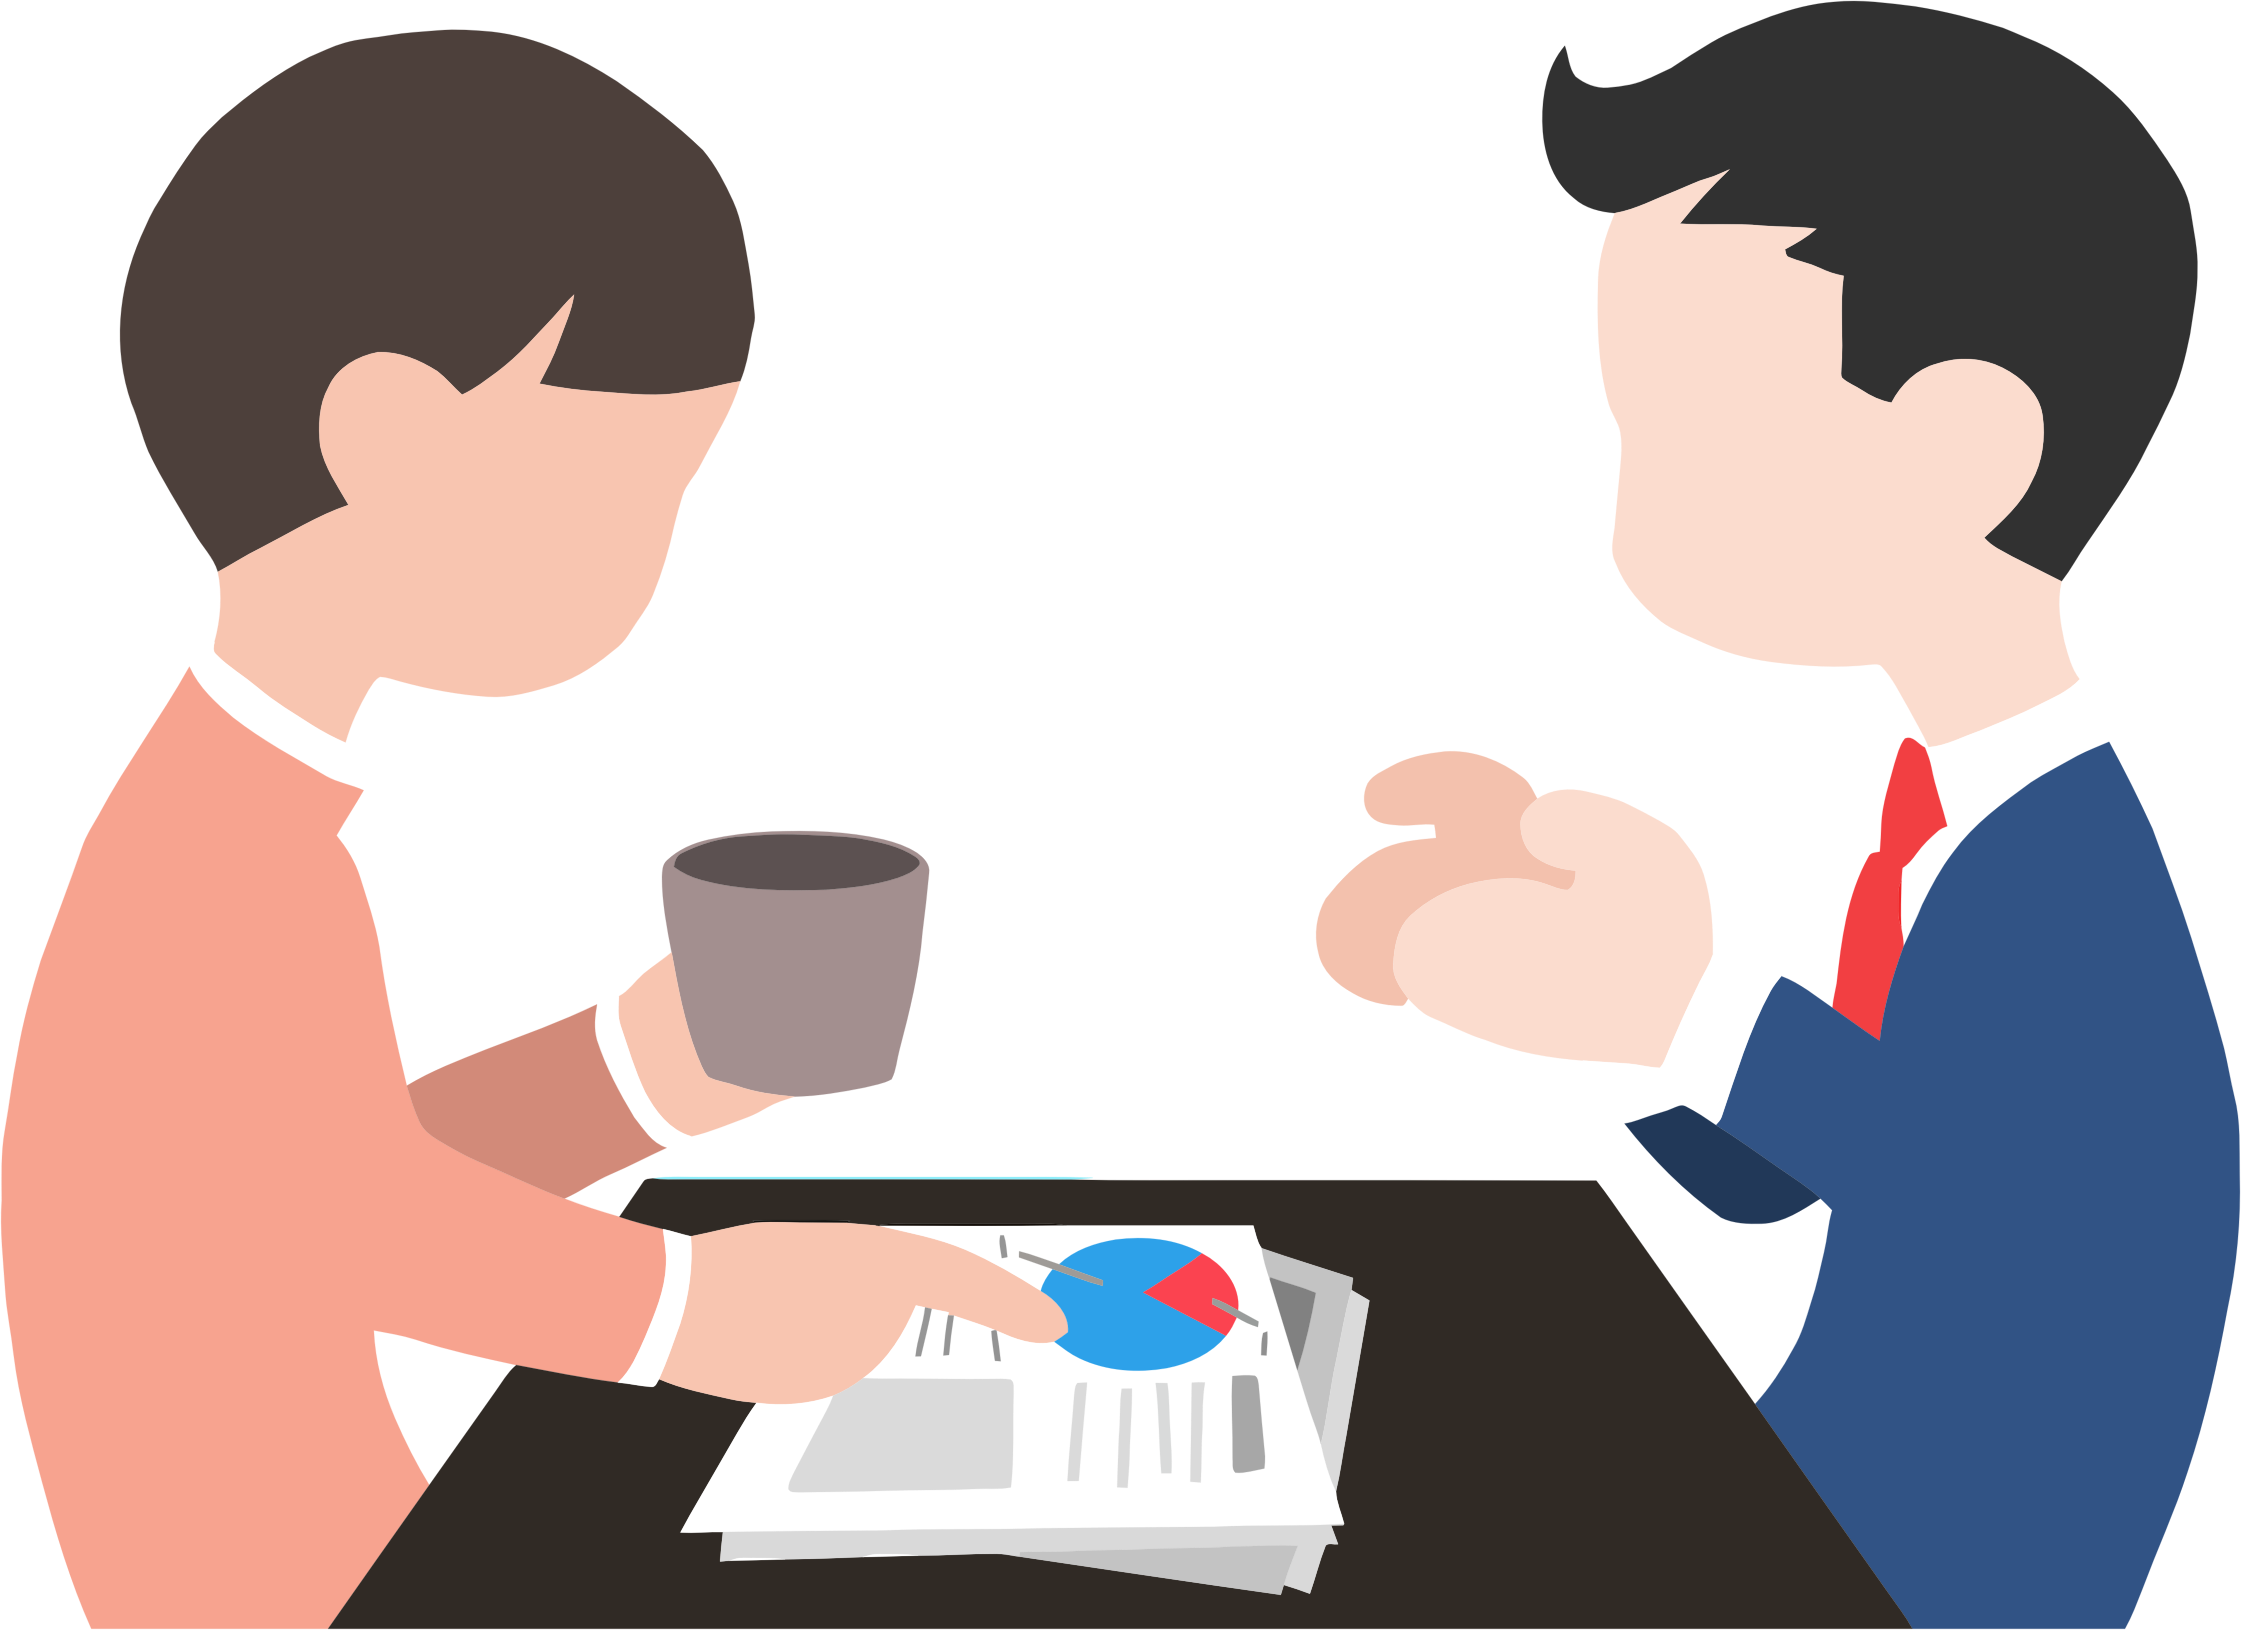 Business clipart new business Meeting Clipart No Background No